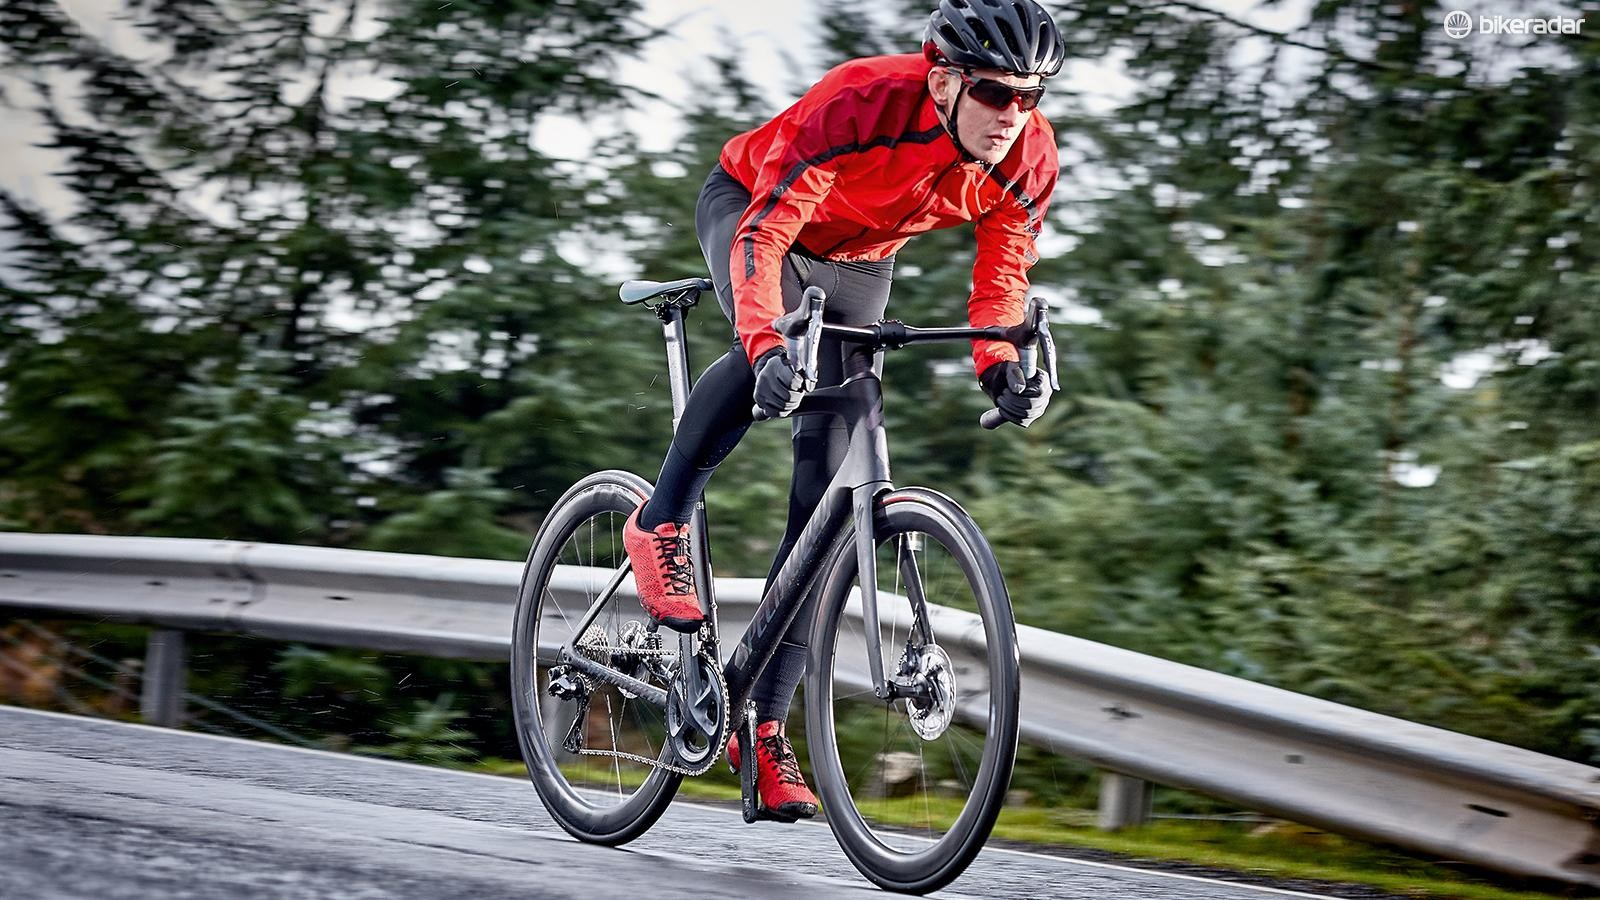 The Venge feels every inch a sharp-handling race bike, especially when down on the drops